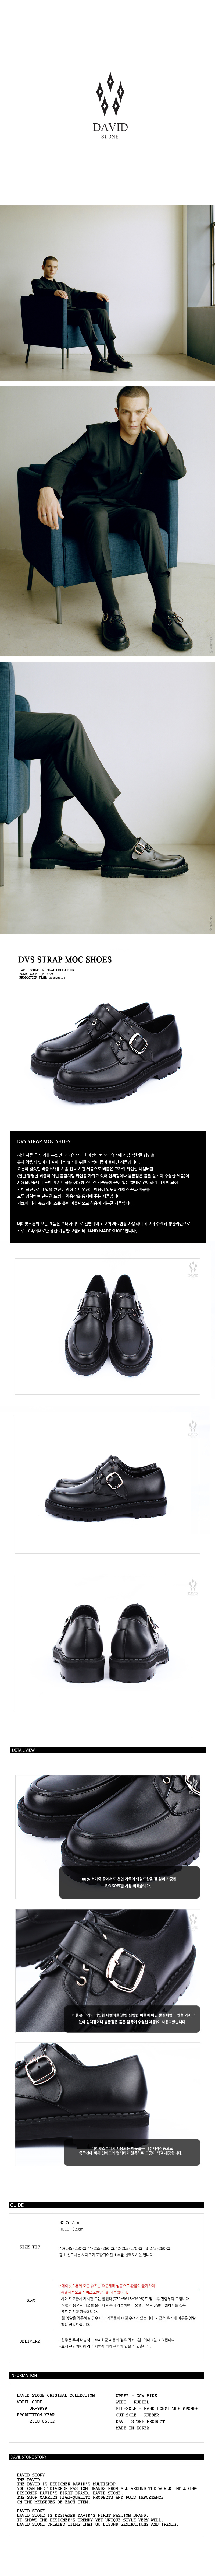 데이빗스톤(DAVID STONE) DVS STRAP MOC SHOES